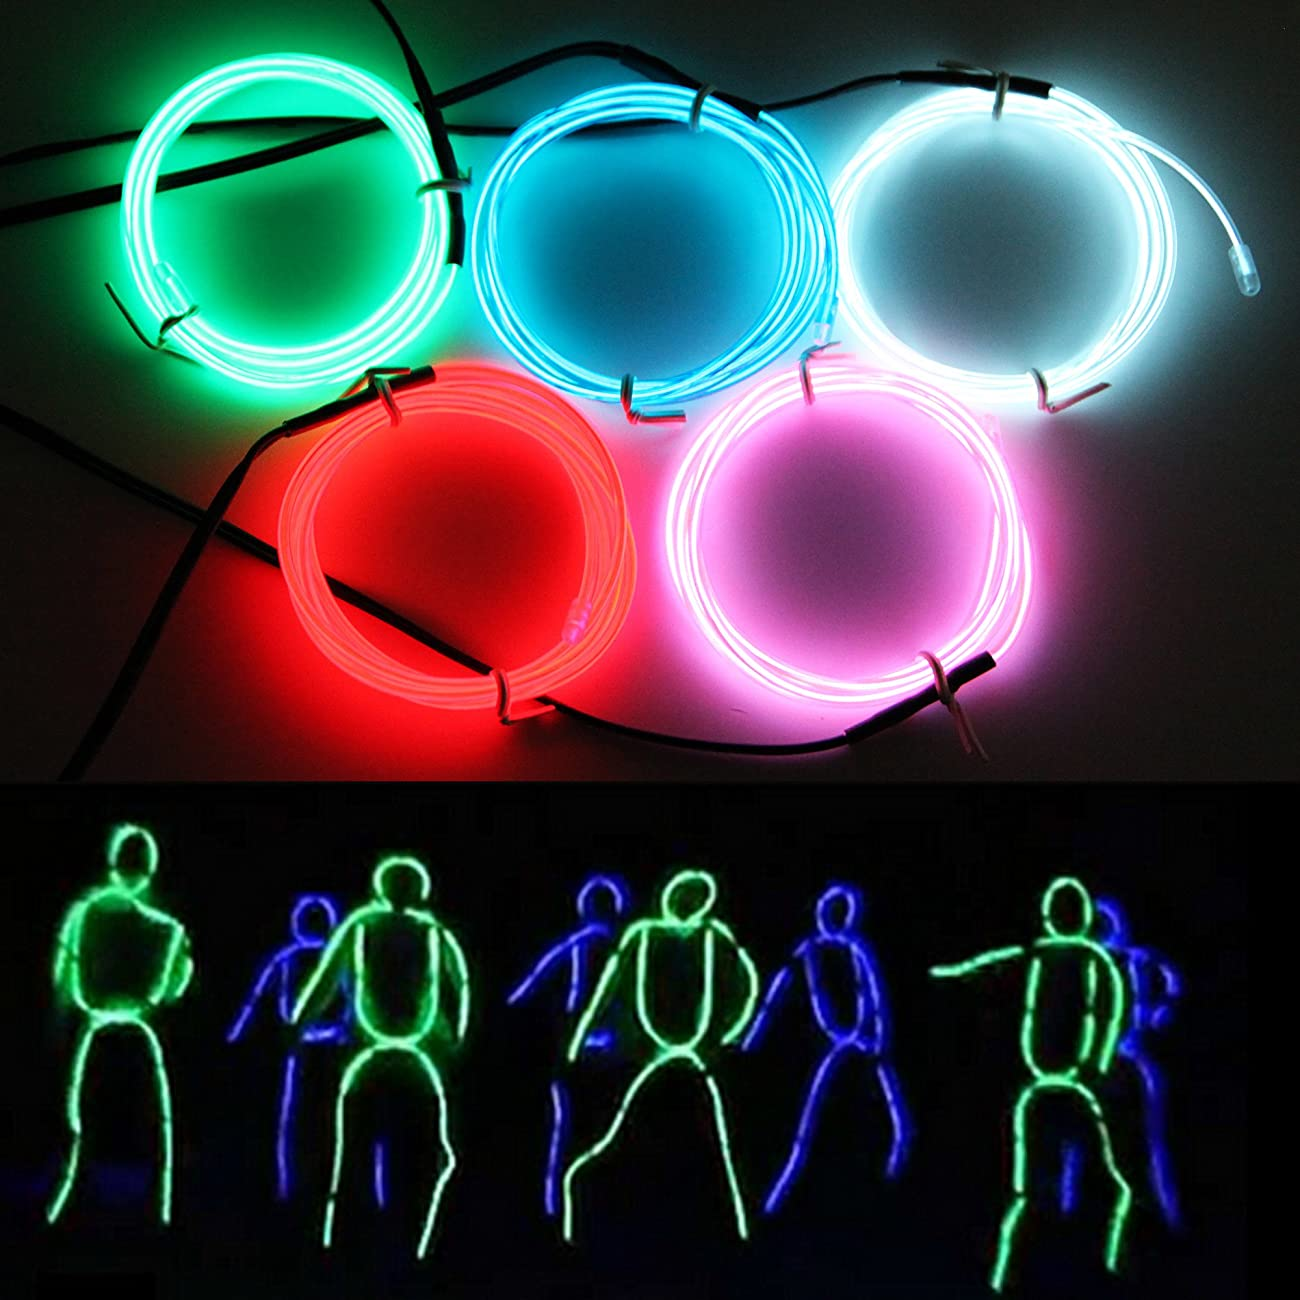 Exlight 5 X 1 Metre Neon Light El Wire- New Drive Electroluminescent Multiple Color-Set of 5(Blue, Green, Red, Pink, and White) 0